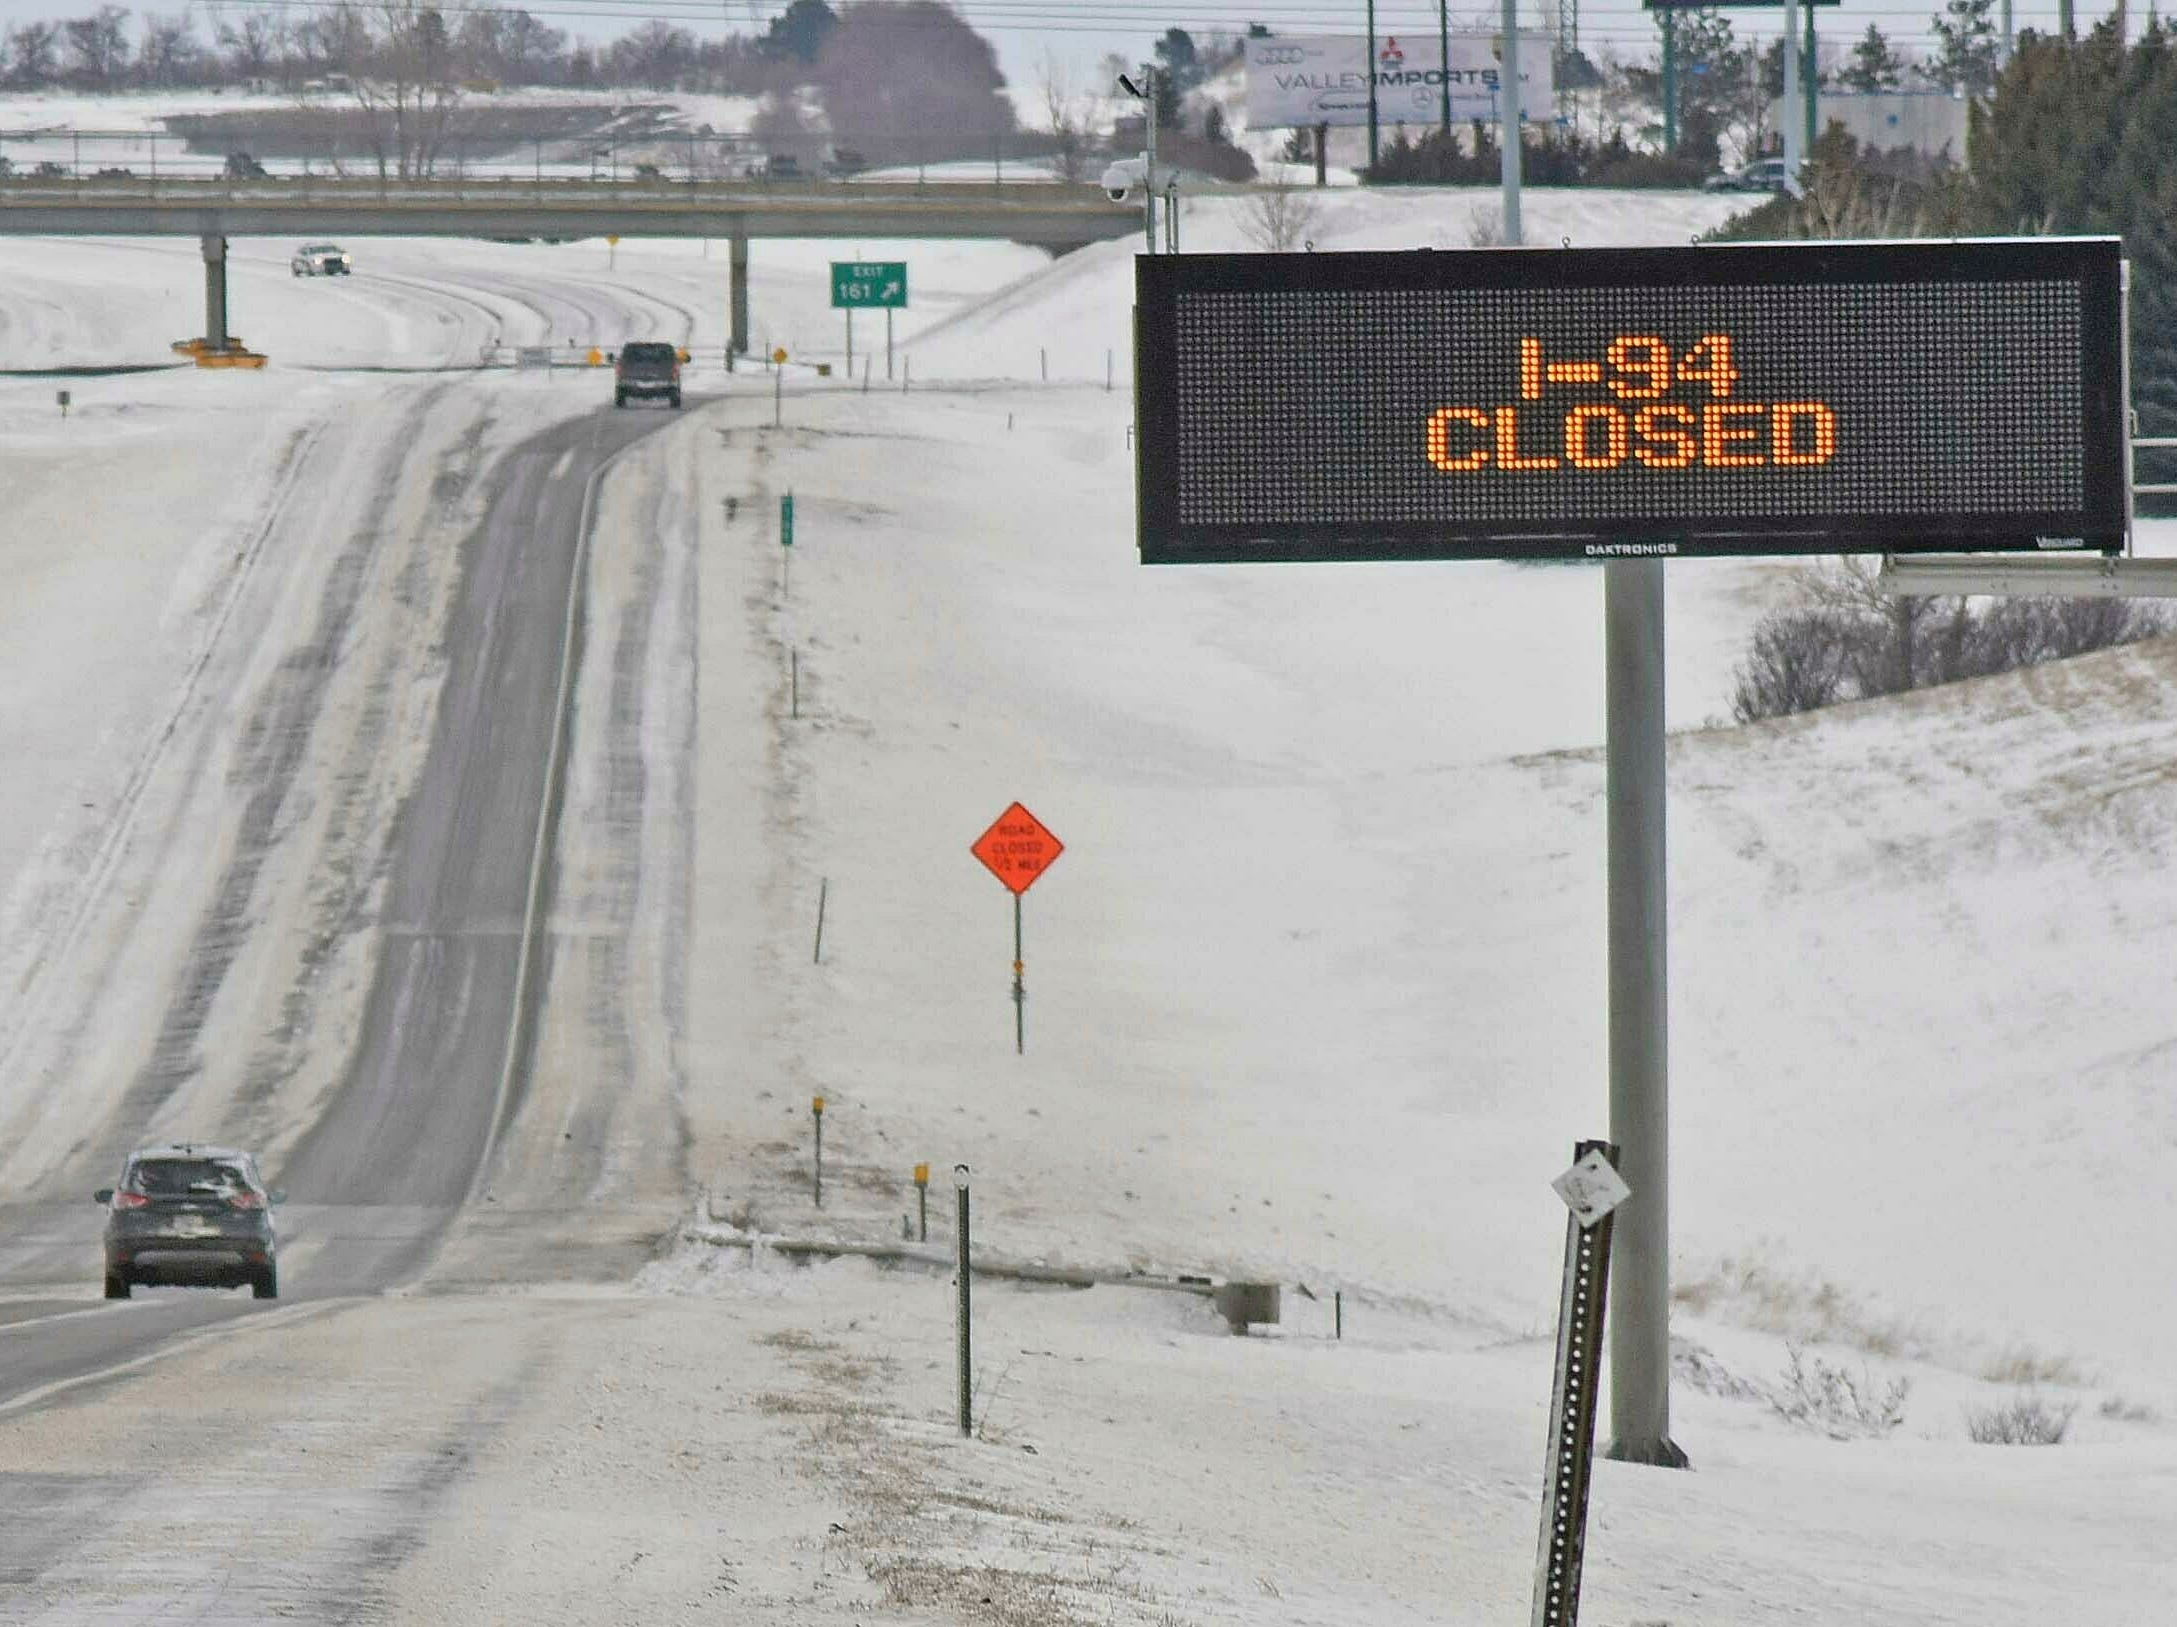 The eastbound lanes of Interstate 94 were closed at Exit 161 on Wednesday evening and remained closed Thursday, March 14, 2019 until snowplows could clear the east-west interstate highway of drifted snow near Bismarck.   North Dakota transportation officials closed sections of major interstates after blowing snow reduced visibility to nearly zero.